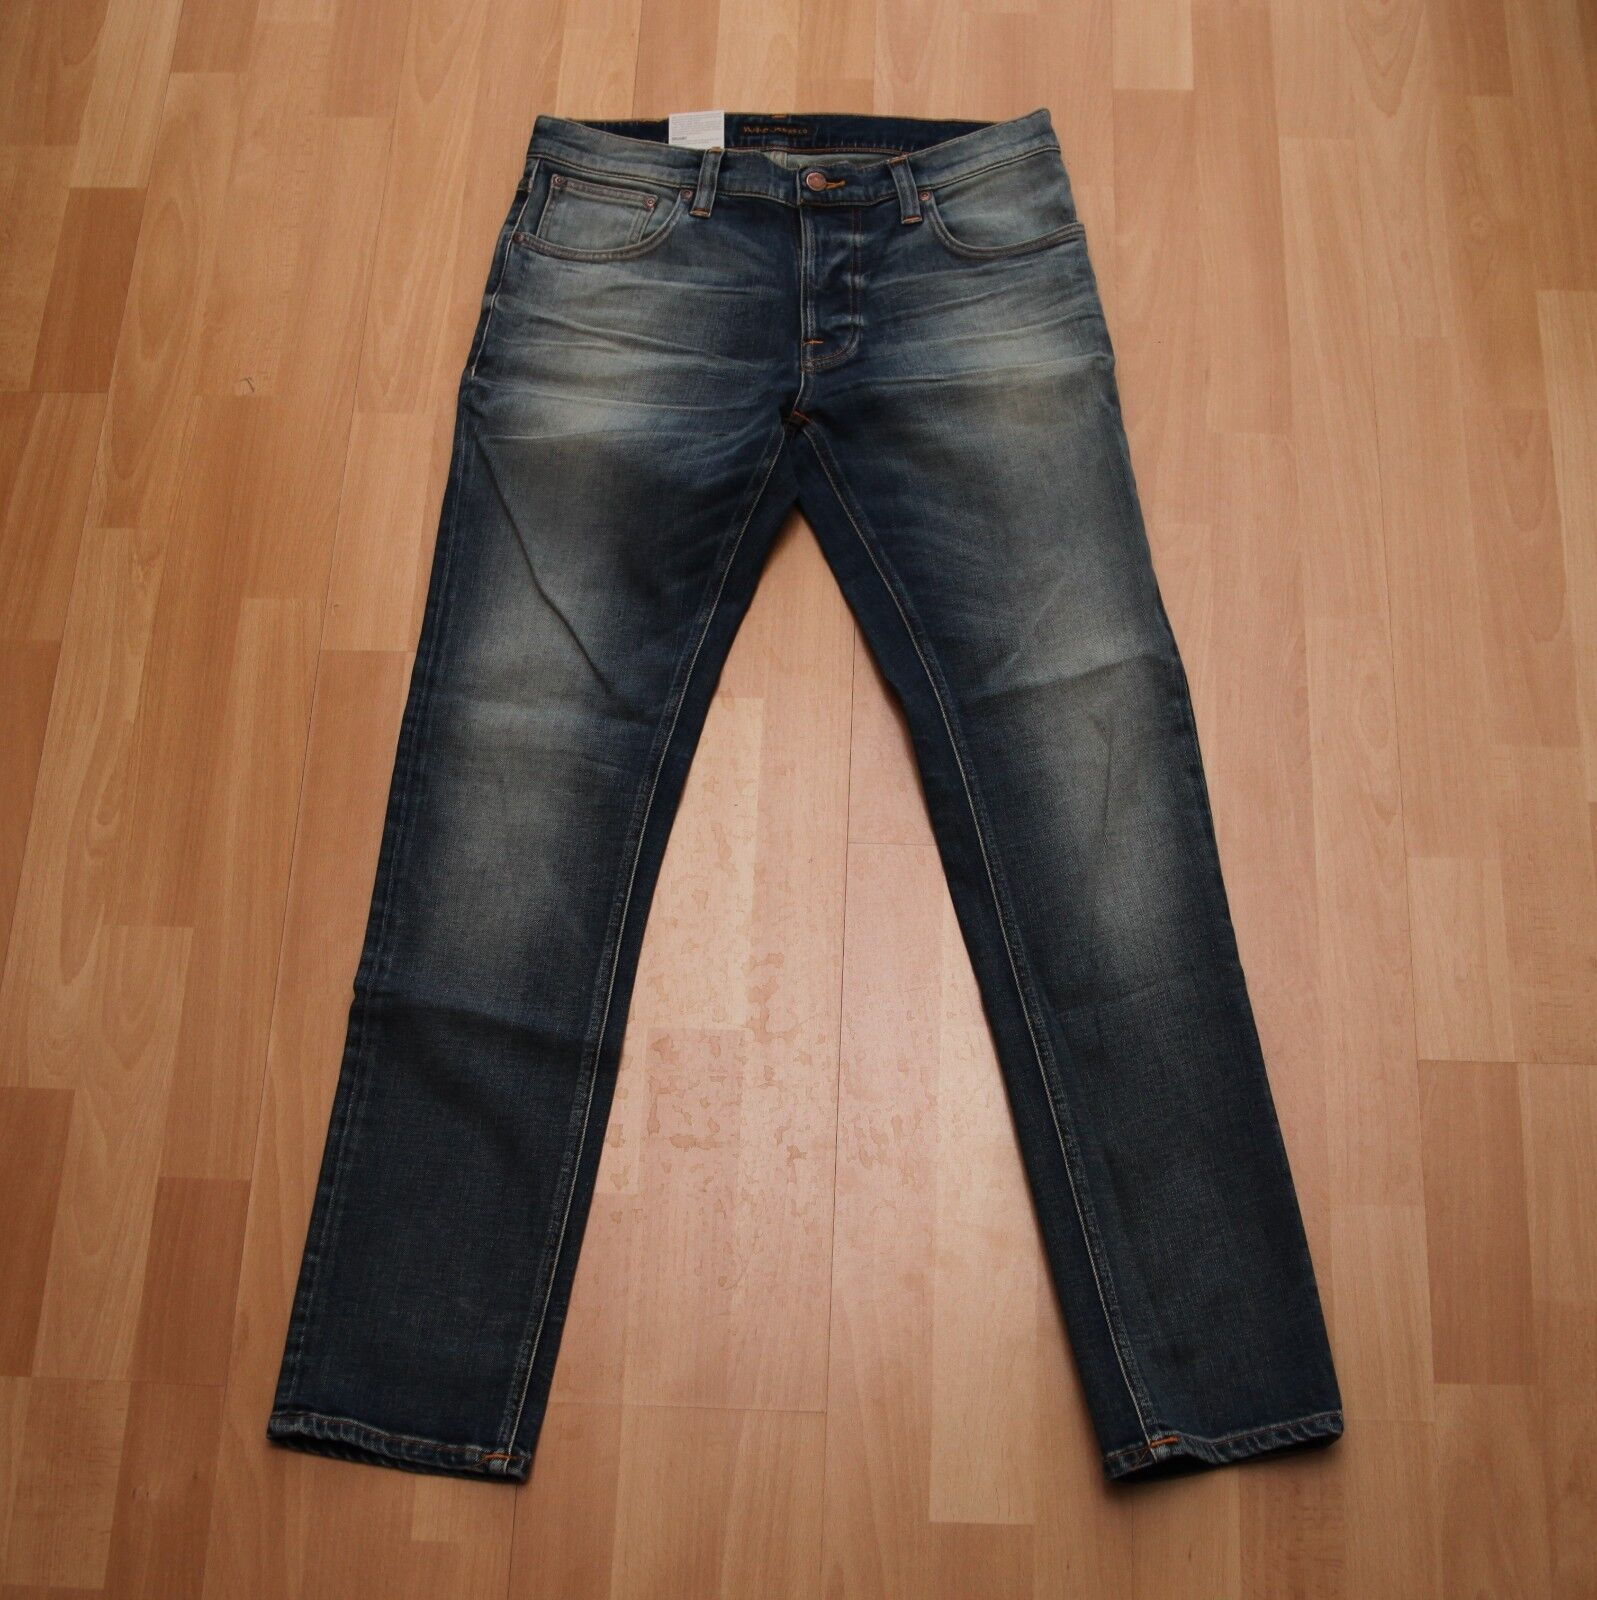 NEU Nudie Jeans TILTED TOR (Tight Fit) bluee Pagan 32 32